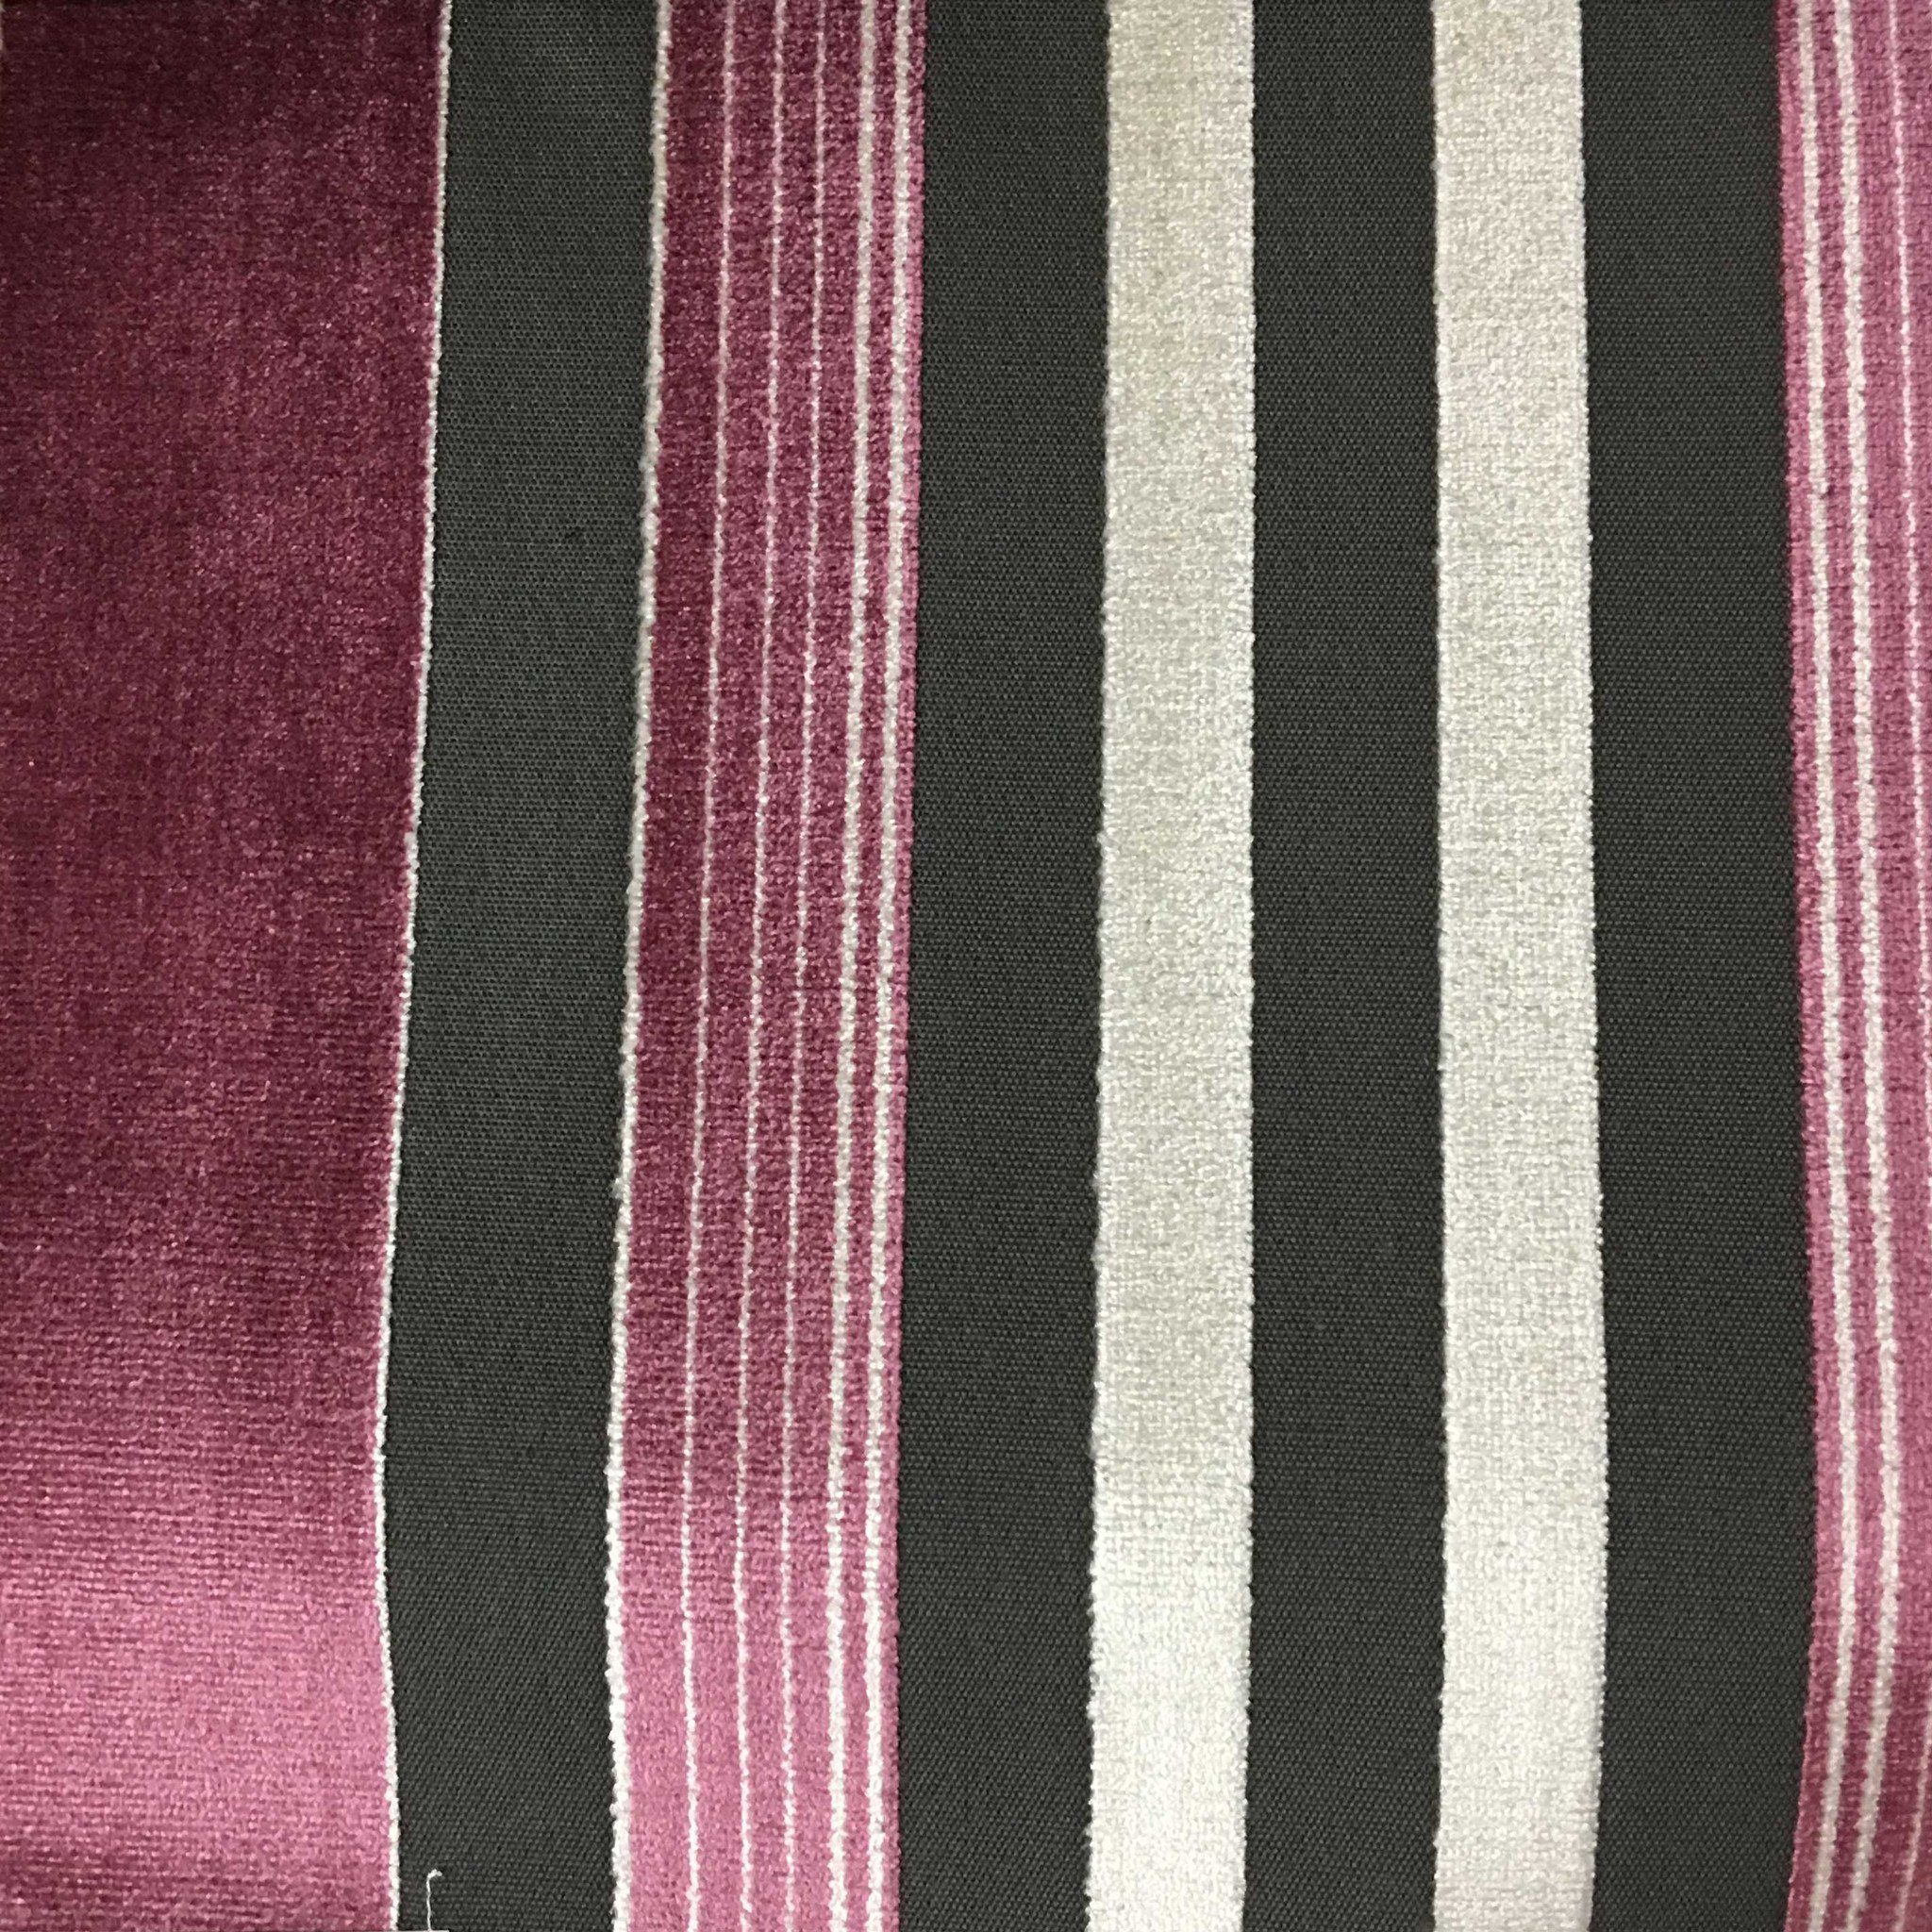 Richmond - Striped Cut Velvet Upholstery Fabric by the Yard ...